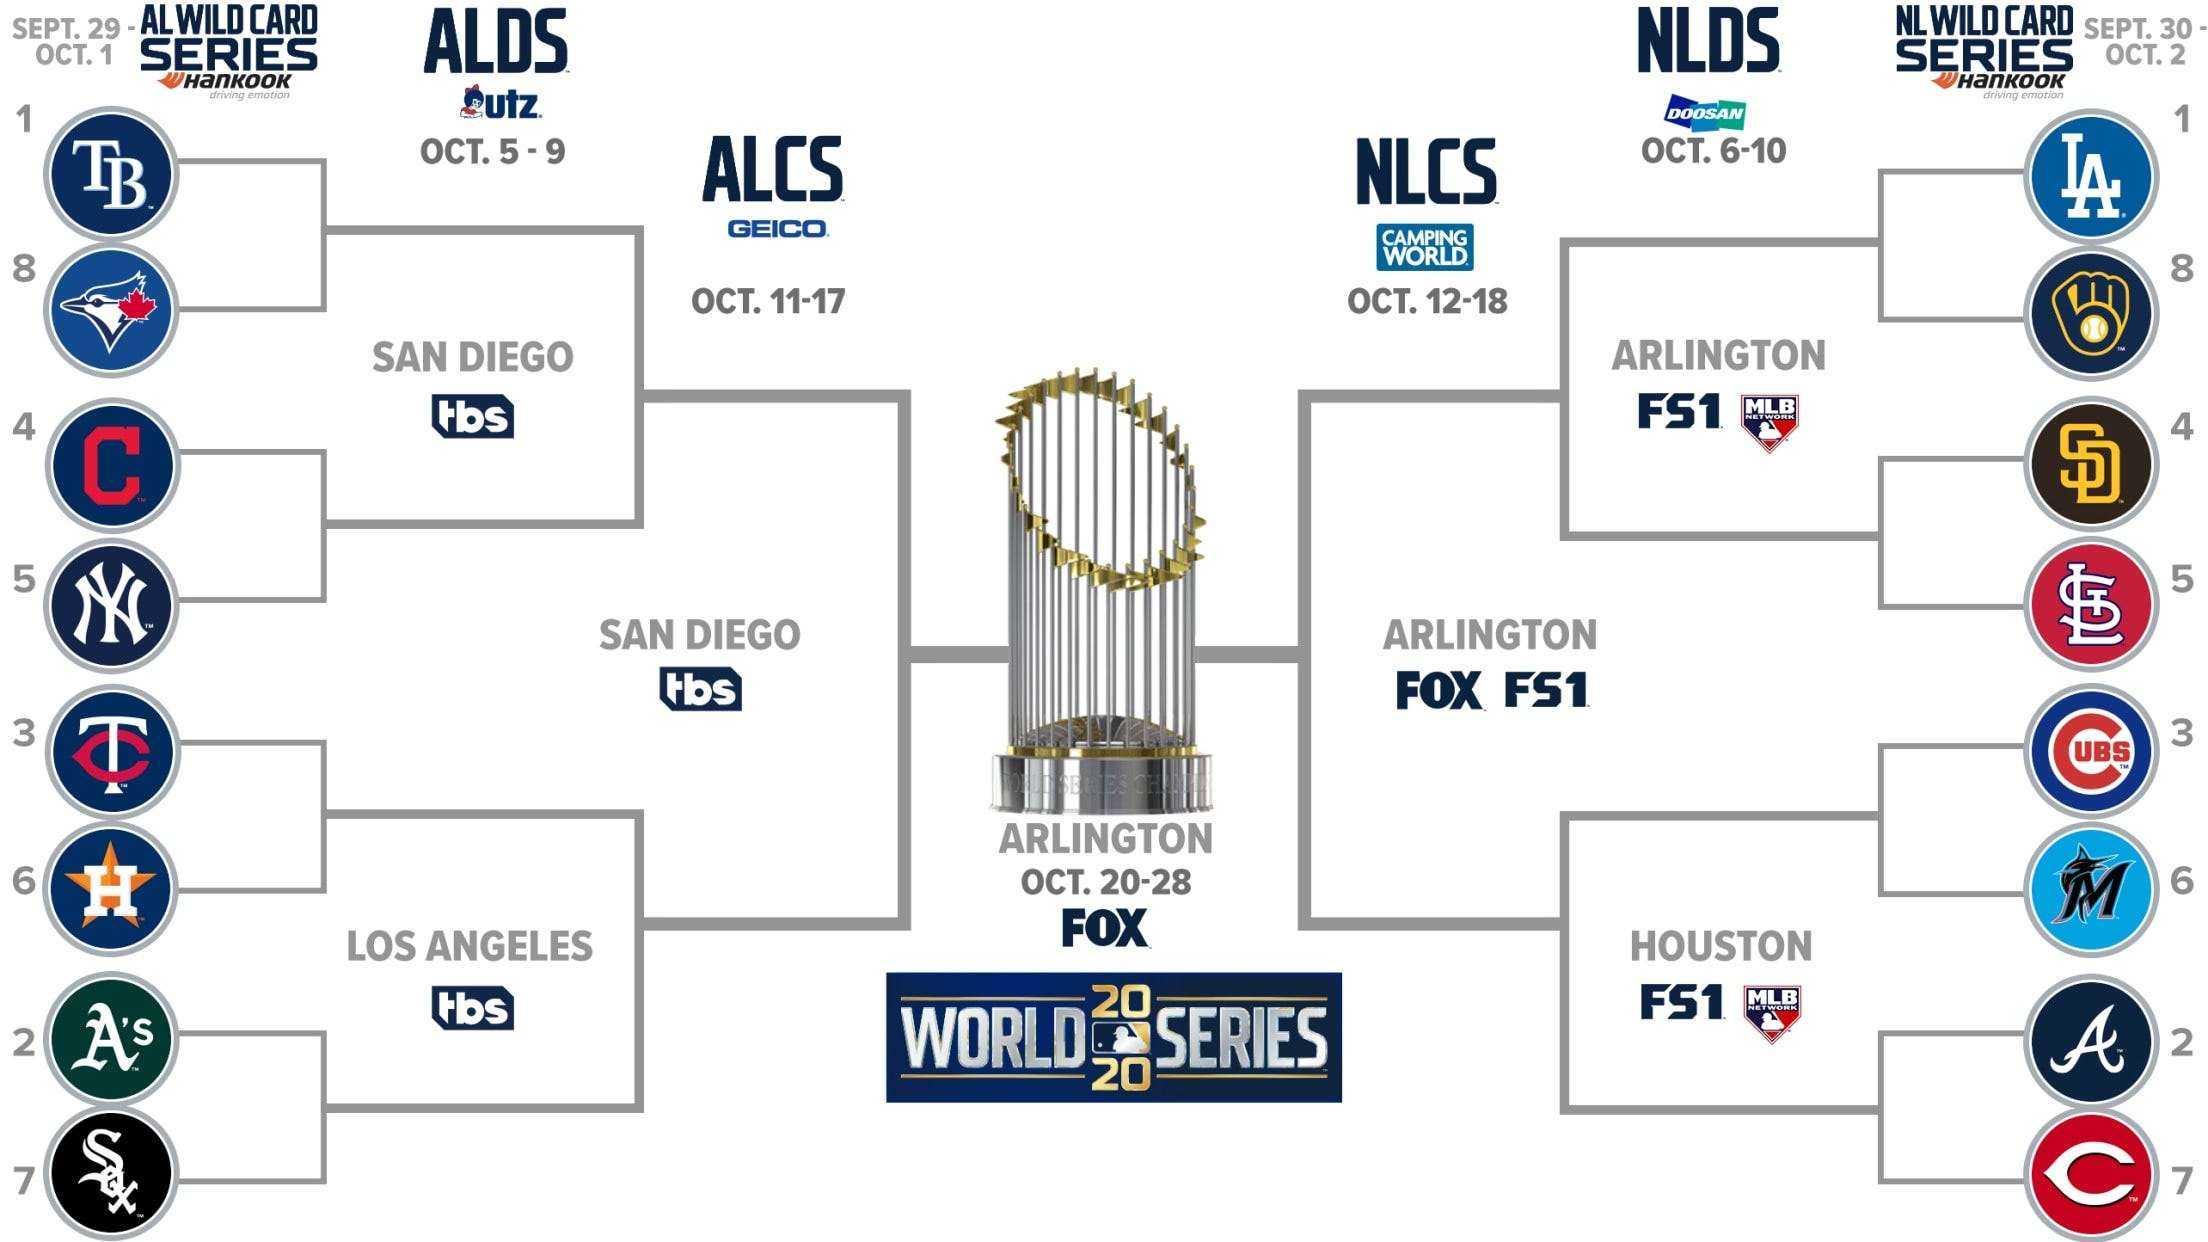 The 2020 Mlb Playoff Bracket Is Set Here S How The Postseason Will Work In The Most Unique Season In Baseball History Business Insider India